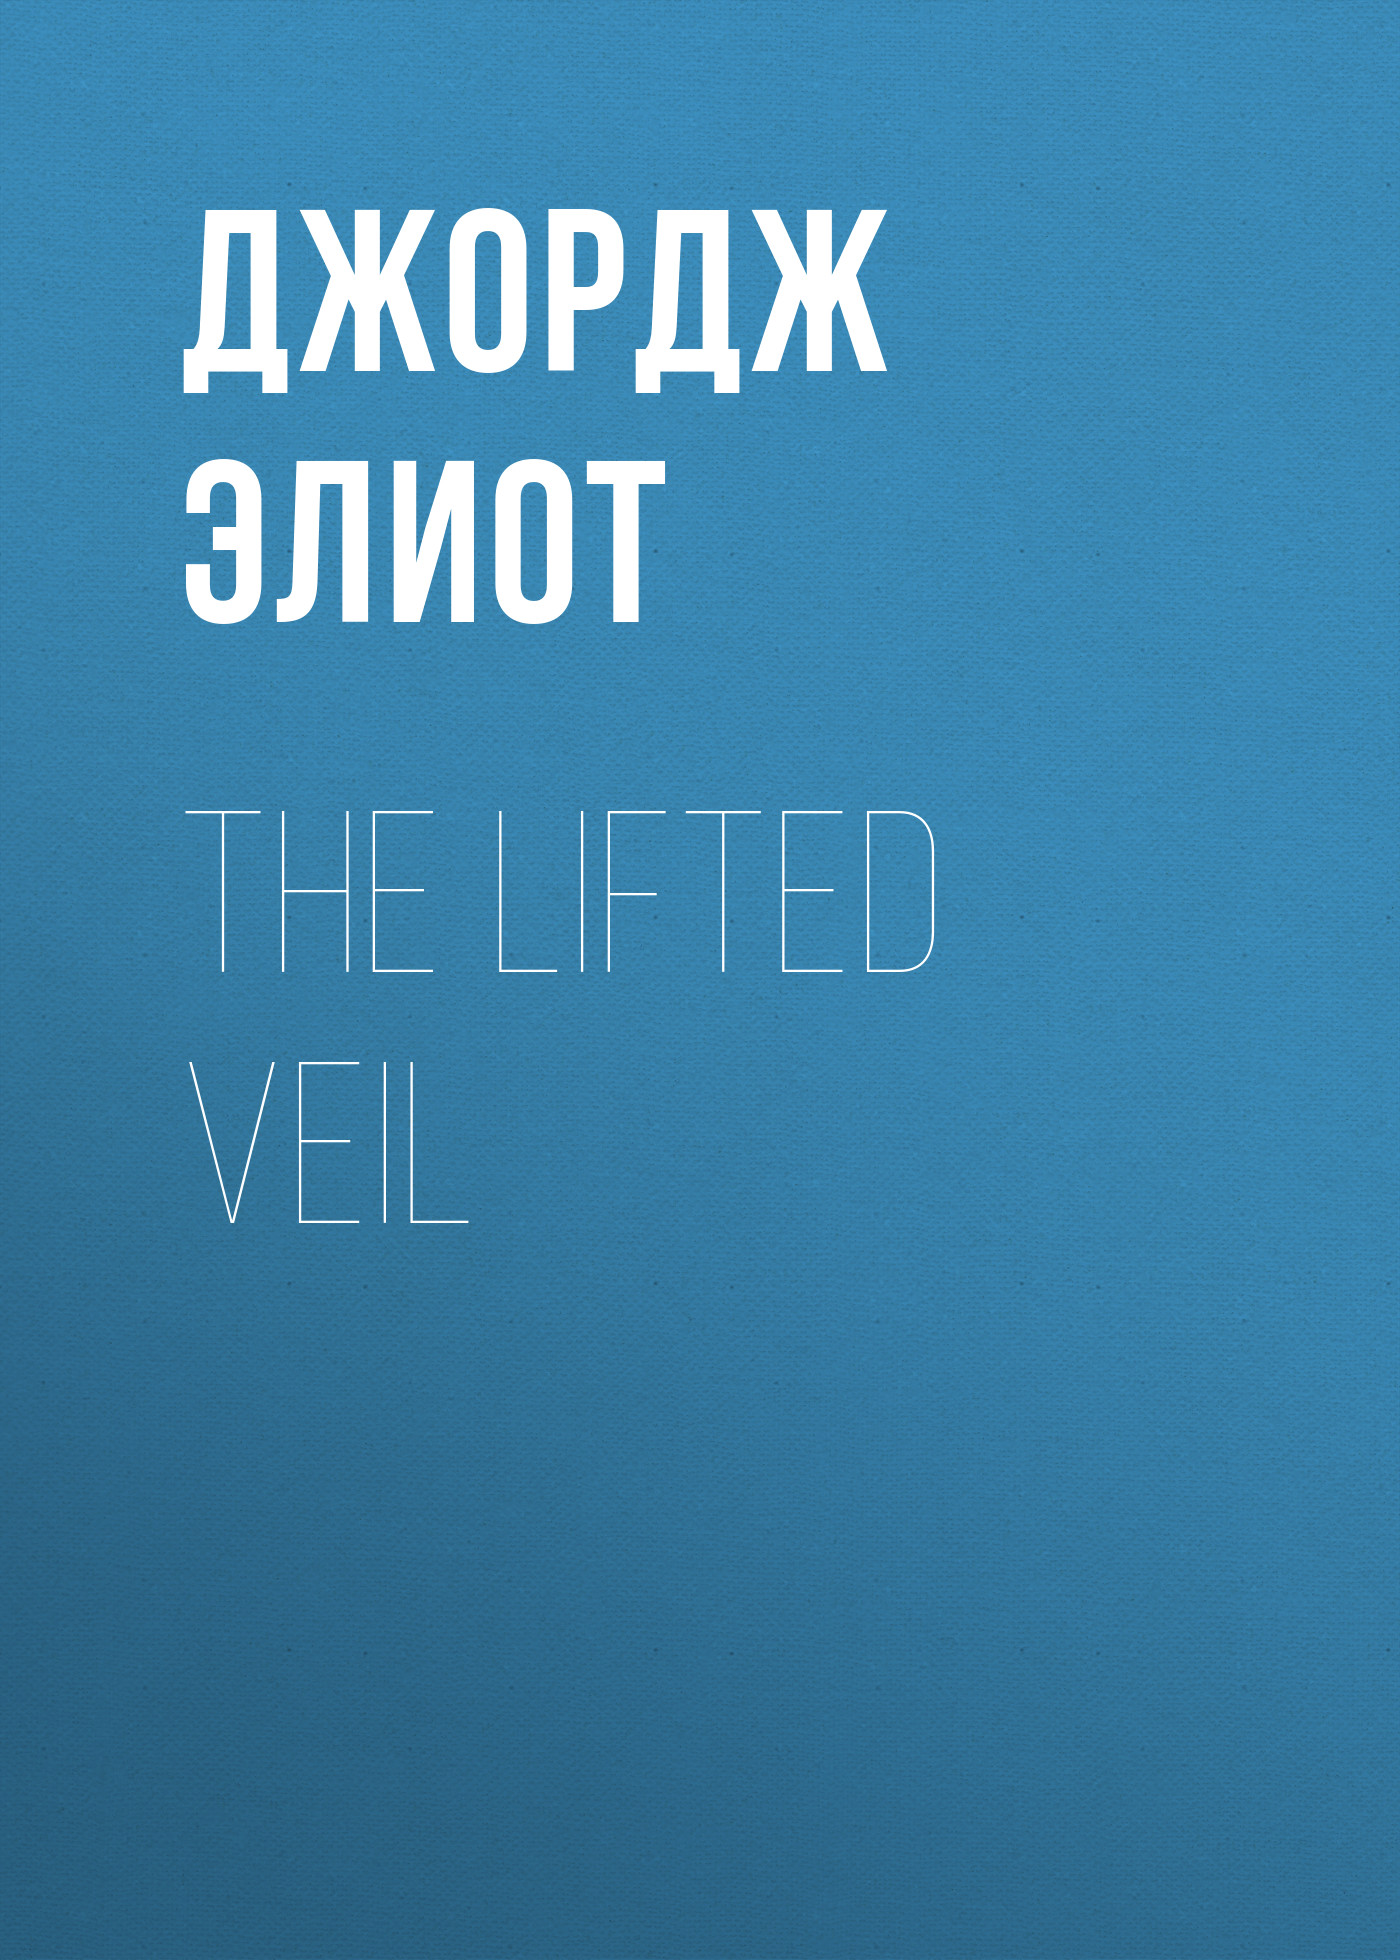 Джордж Элиот The Lifted Veil джордж элиот silas marner